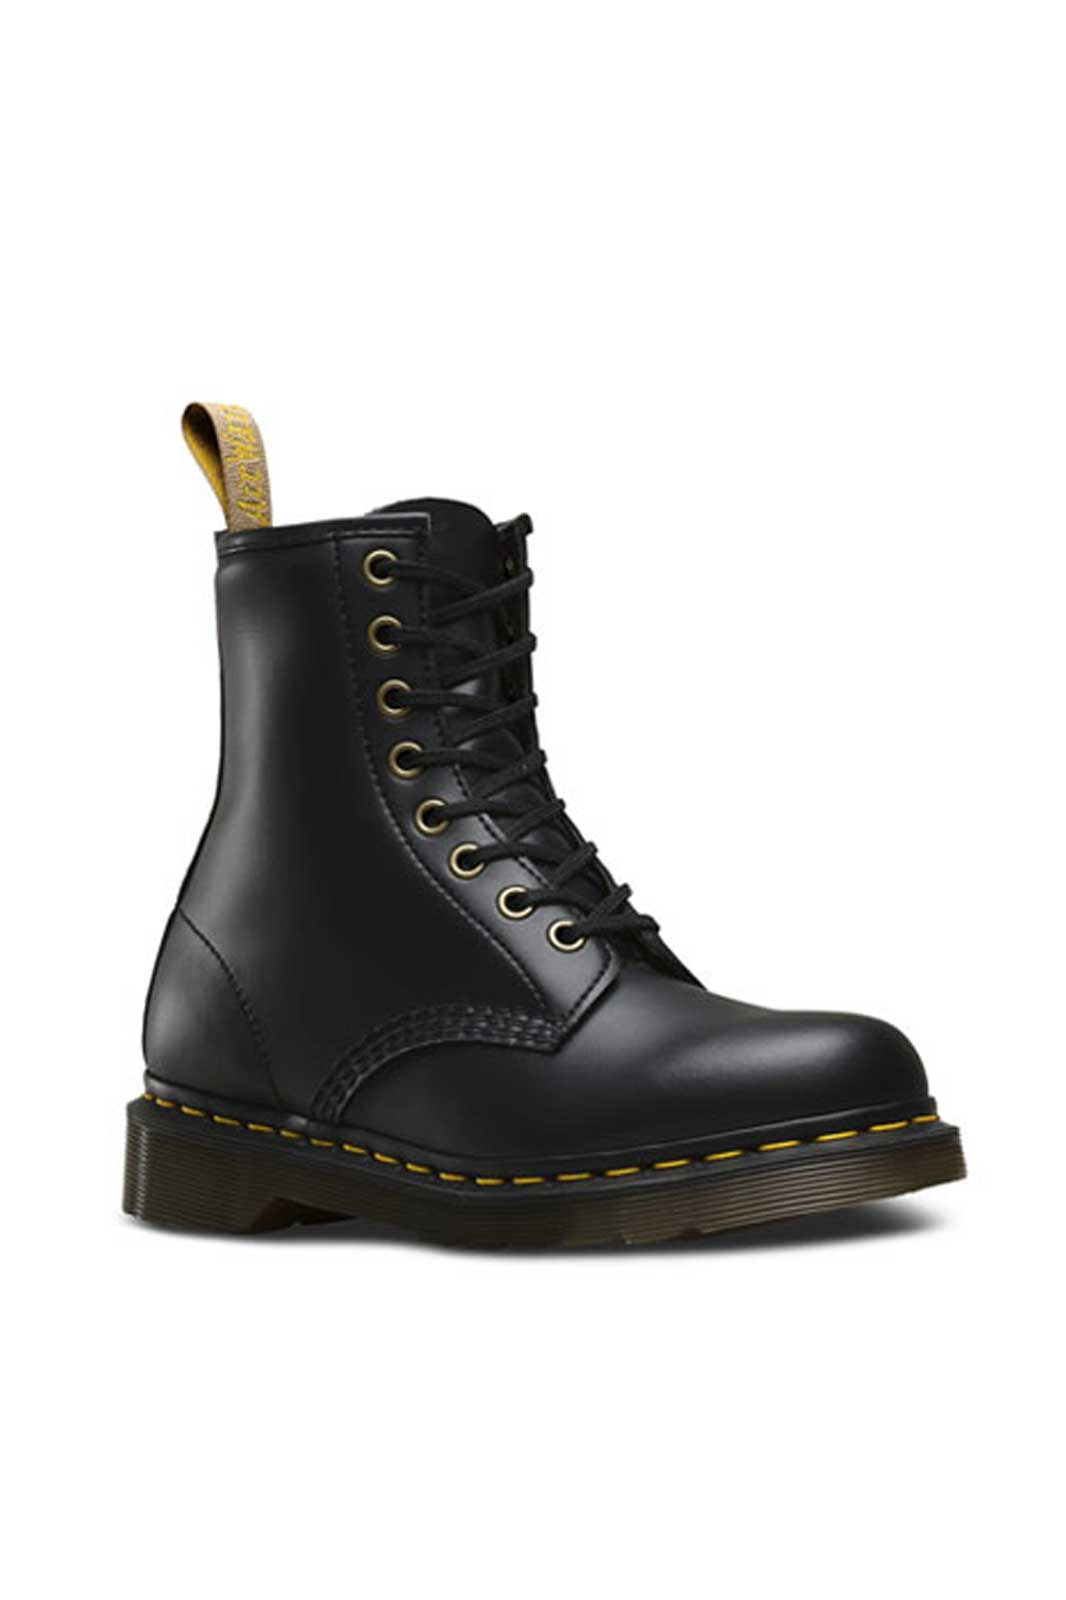 dr martens 1460 vegan 8 eye boot black